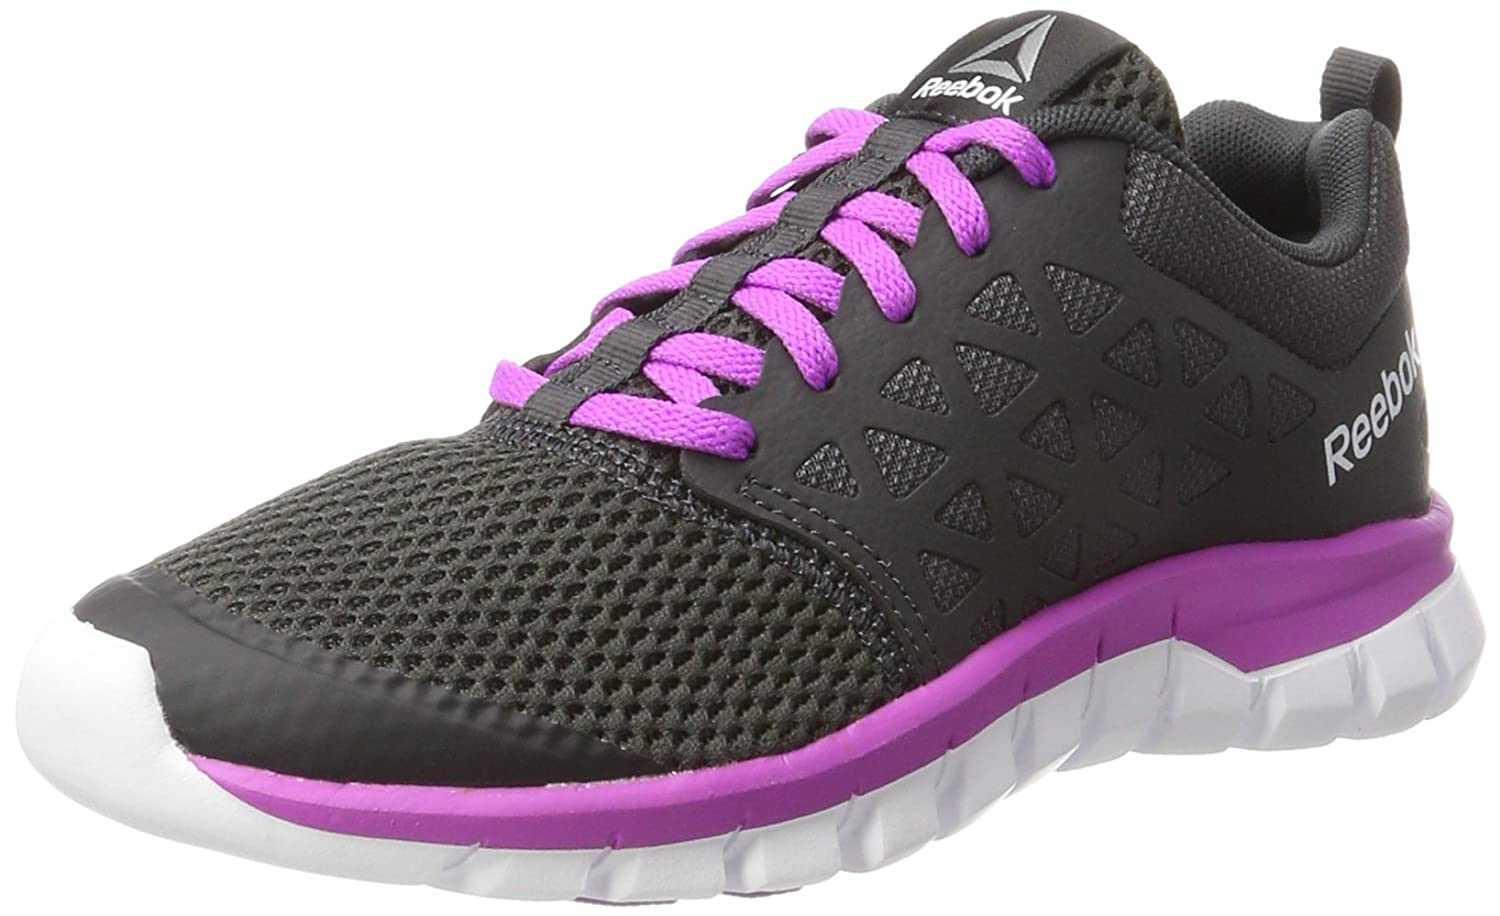 Reebok Damen Sublite Xt Cushion 2.0 Mt Laufschuhe